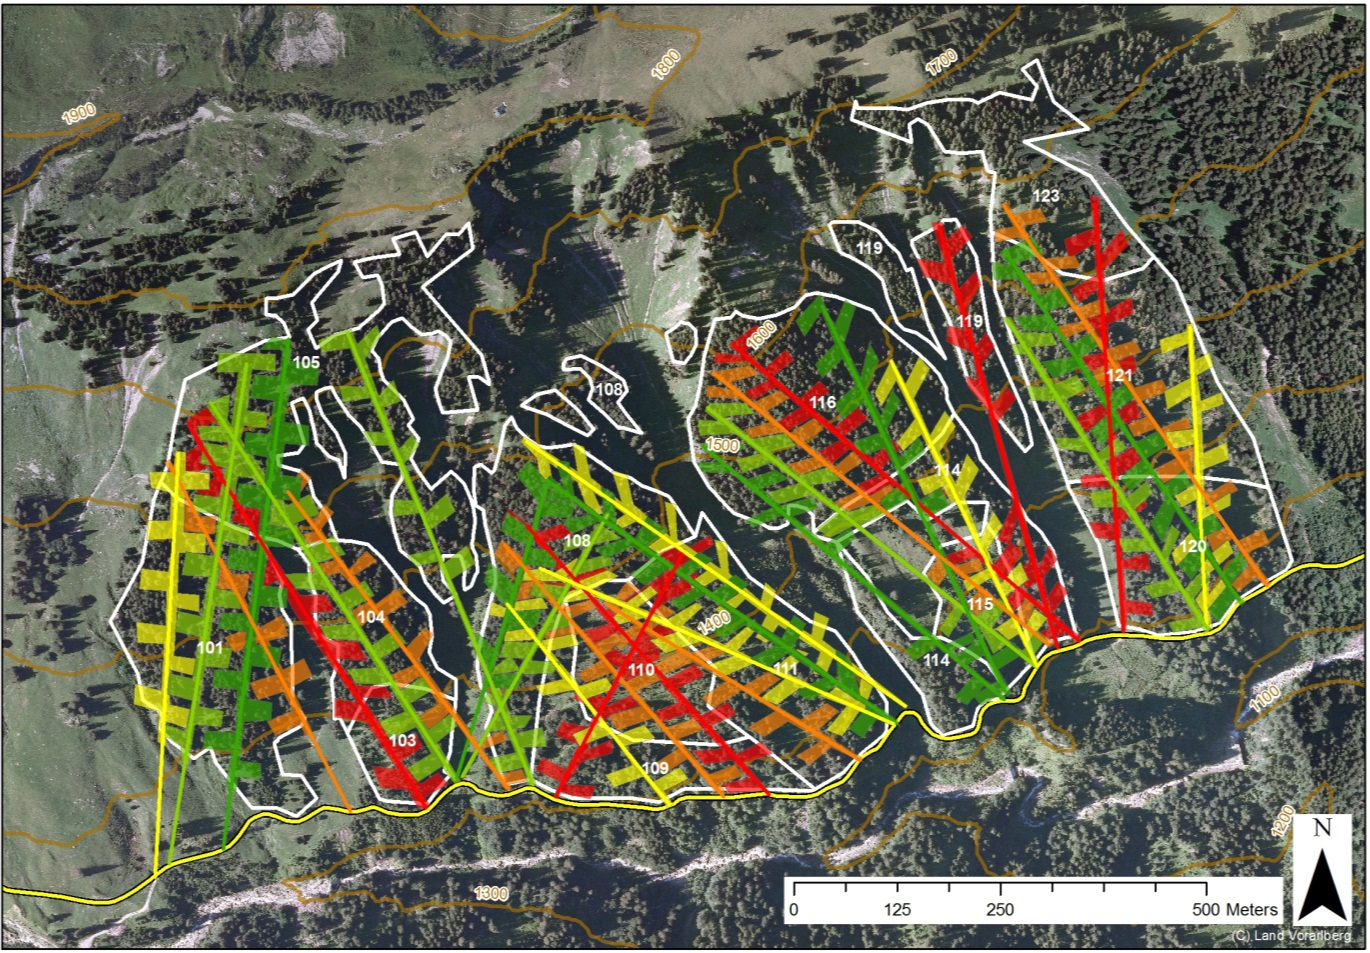 Figure MO-4: Fishbone shaped slit cuts as proposed as an adaptation measure planned over 100 years for a forest compartment of ca. 70 ha. The colors of the slits cuts and skyline tracks indicate 20 year time periods from green to red (from 2010 to 2110). The stands are displayed in white and the road at the bottom of the slope in yellow. This approach results in a faster turnover of tree generations by 20%.